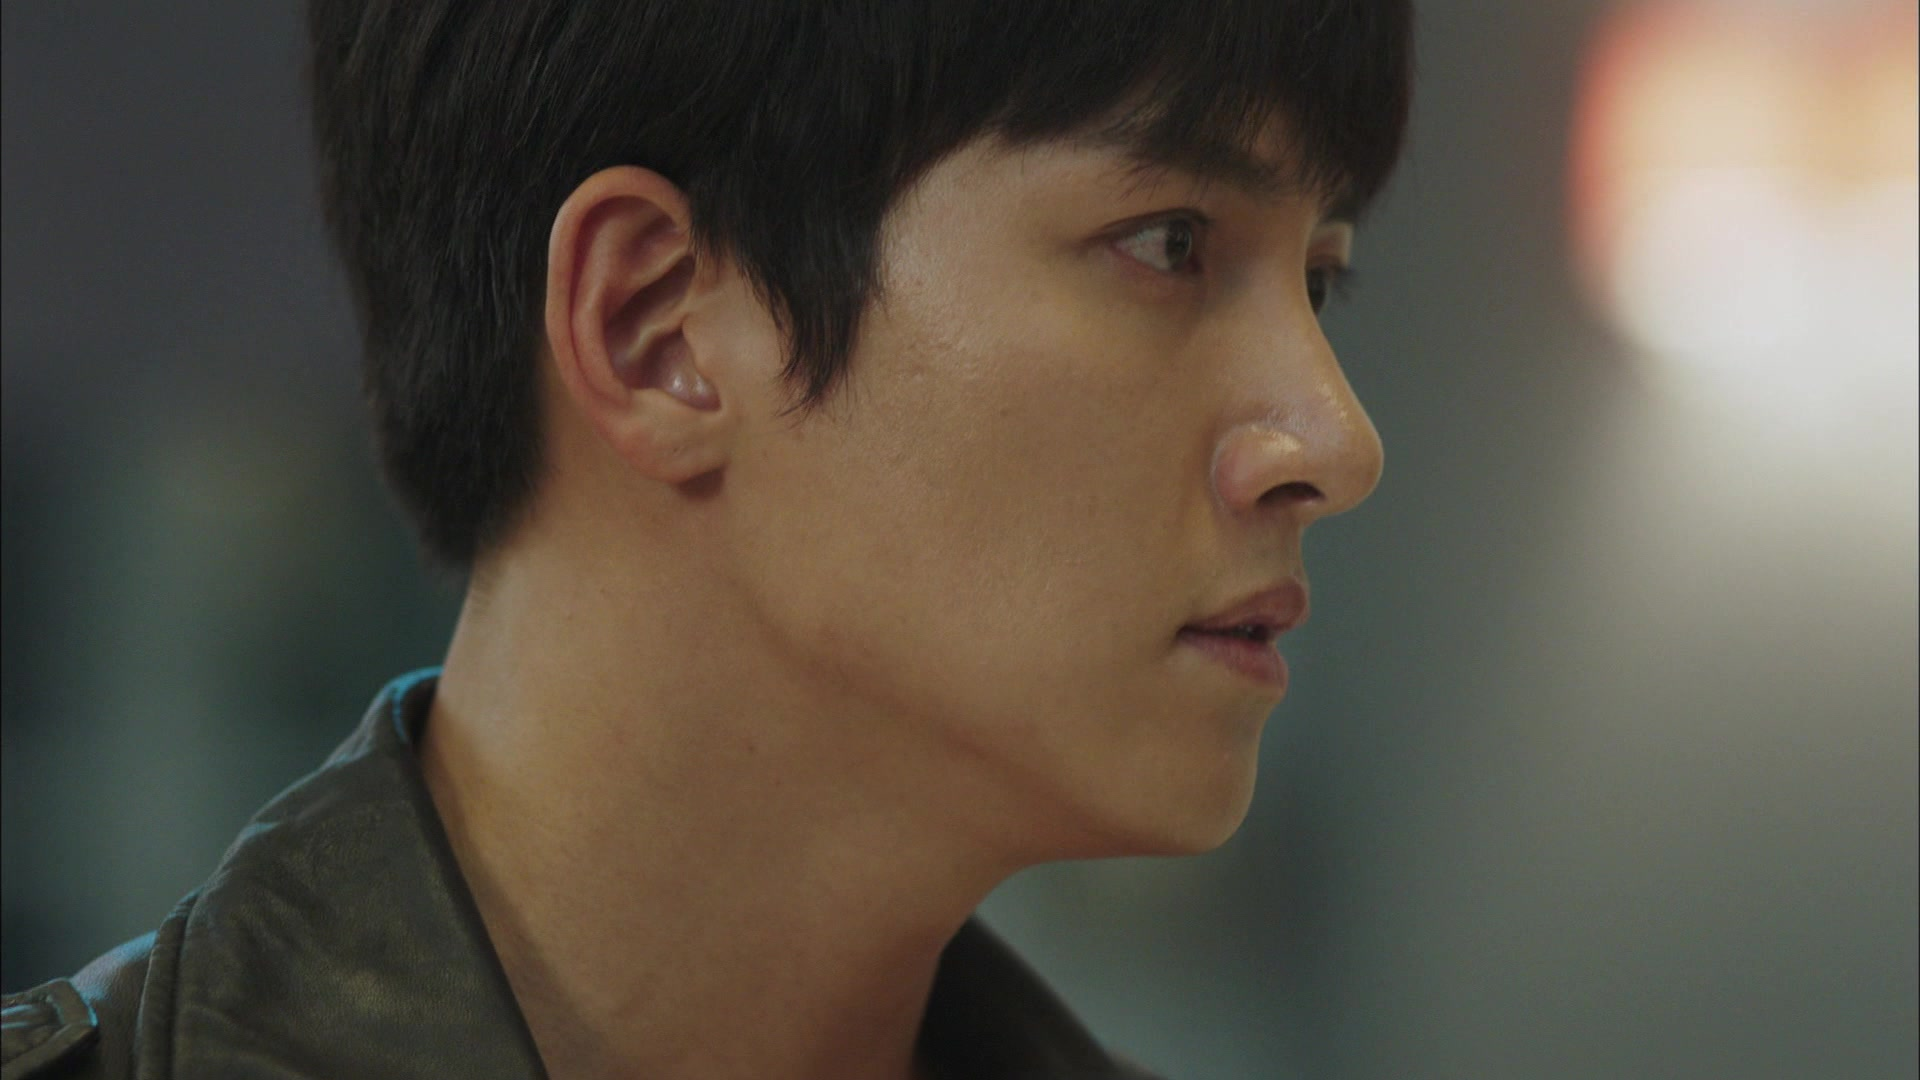 The K2 Episode 2